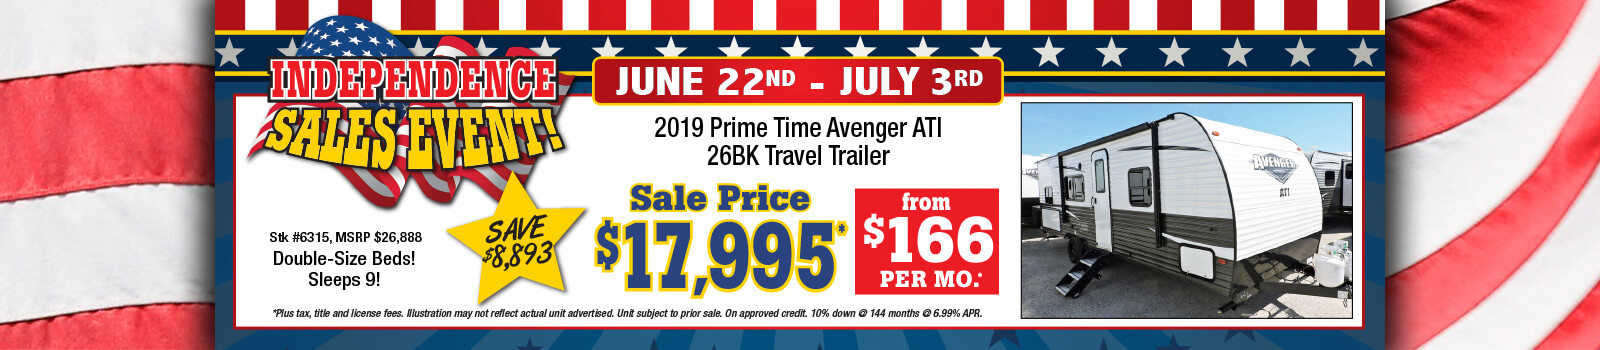 Independence Sale Event - Prime Time Avenger